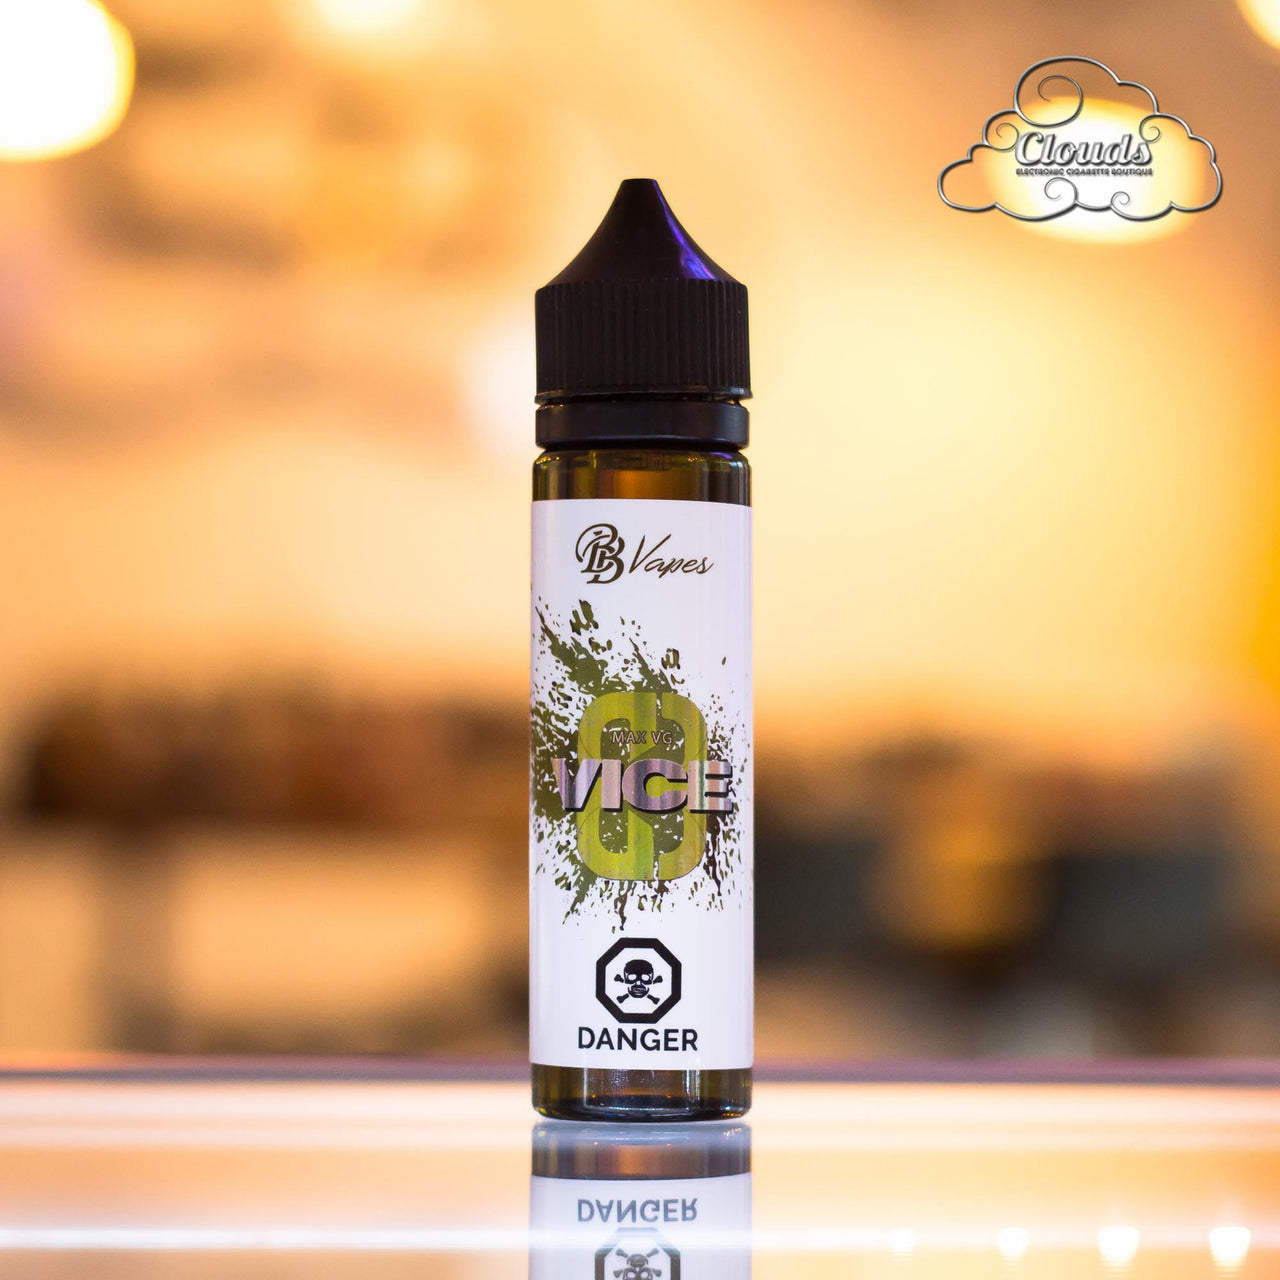 BB Vapes Vice